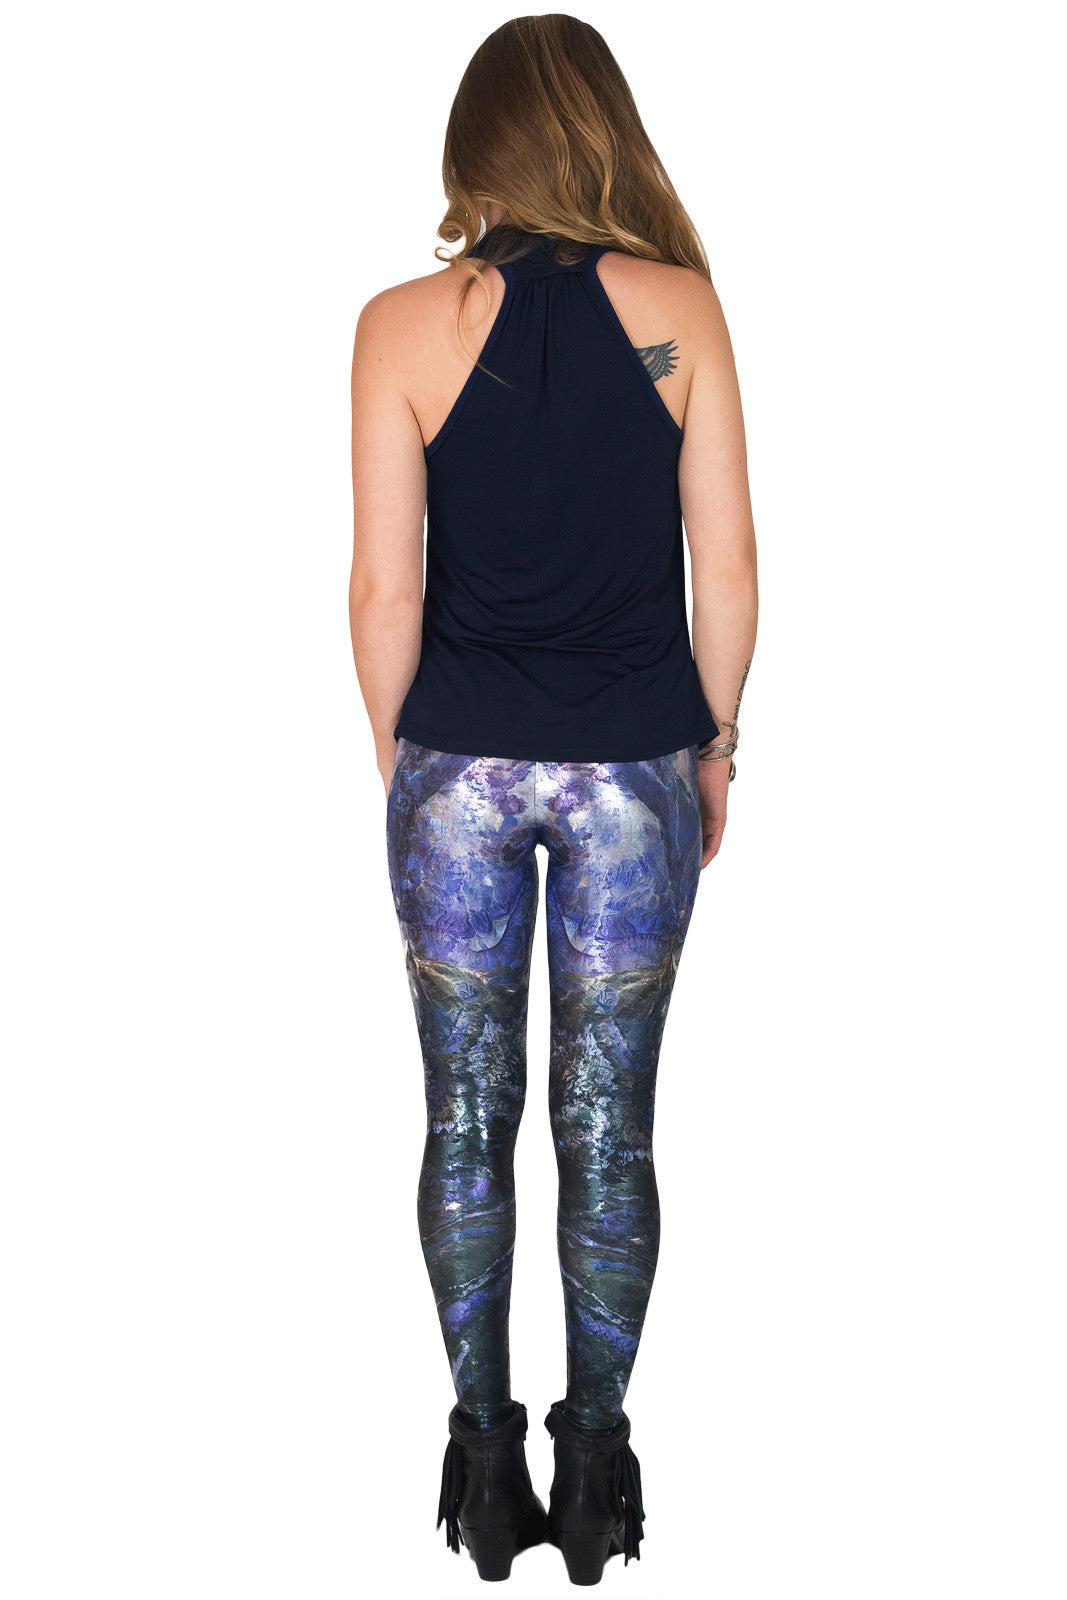 Leggings Foil -Colorful Printed Leggings-NASA Satellite Image of Earth